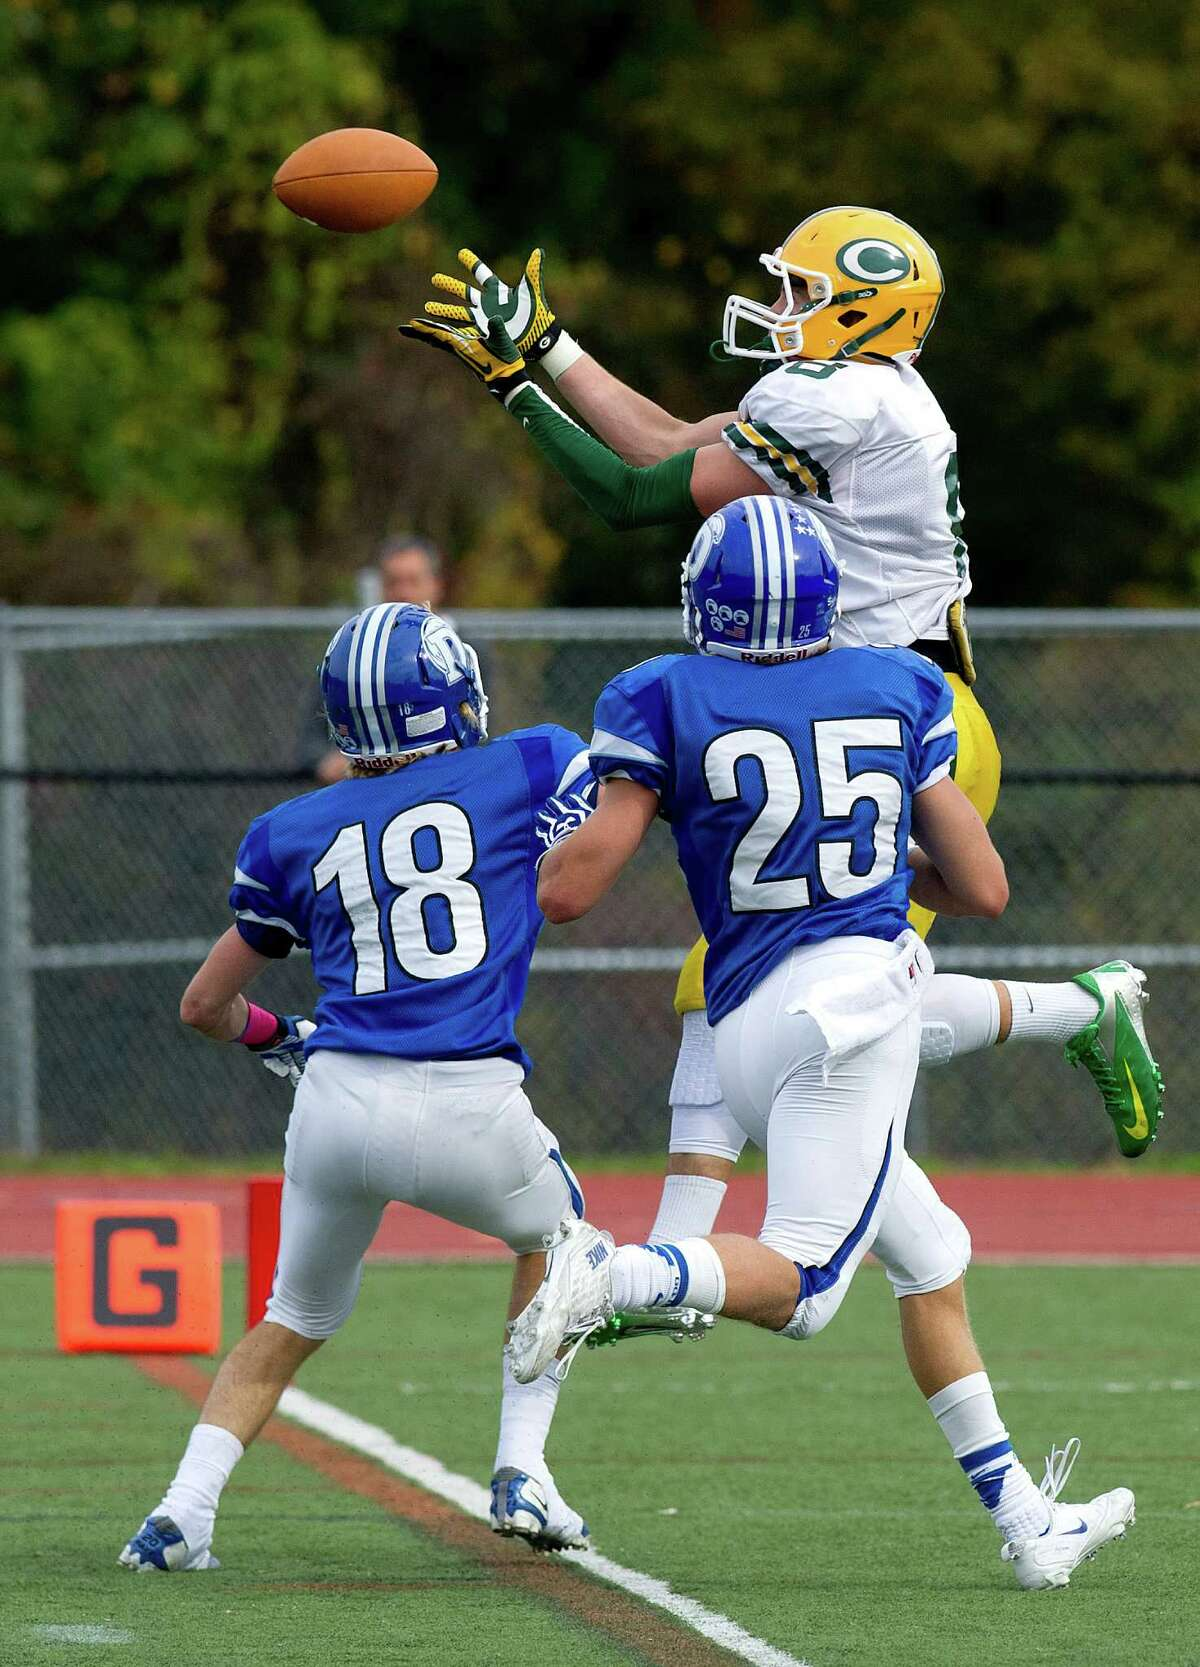 Trinity Catholic's Connor Amann makes a catch and scores a touchdown during Saturday's football game at Darien High School on October 19, 2013.